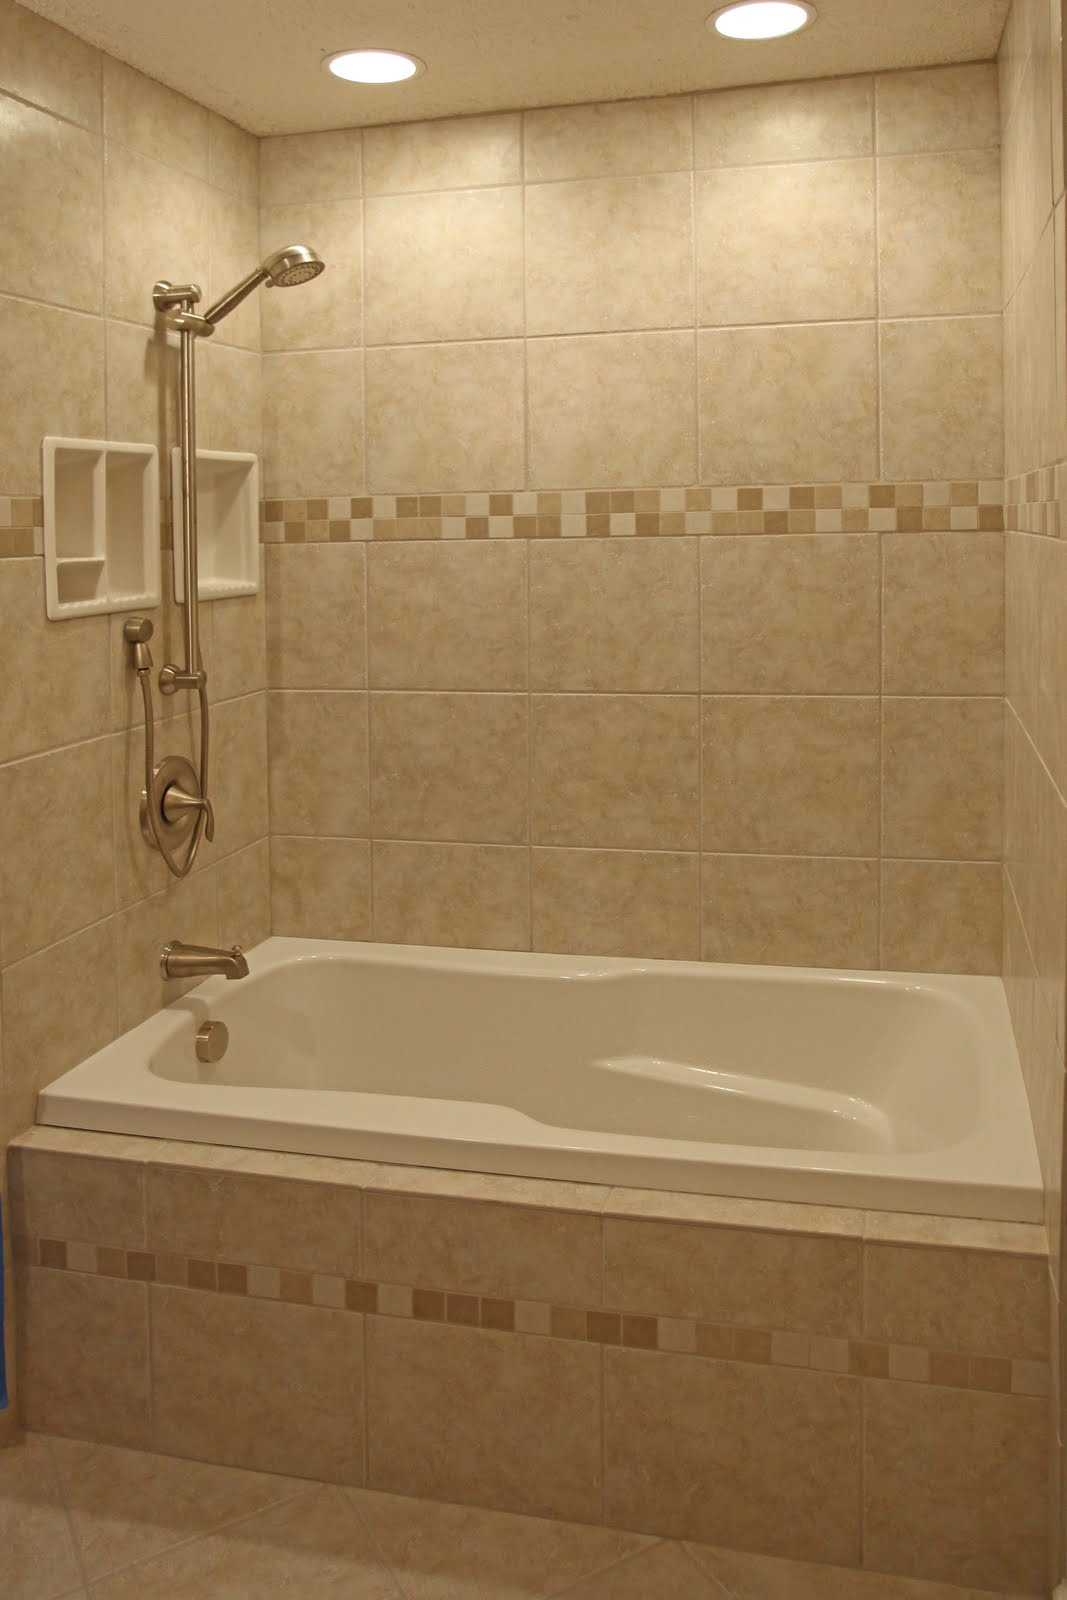 Bathroom remodeling design ideas tile shower niches for Images of bathroom remodel ideas